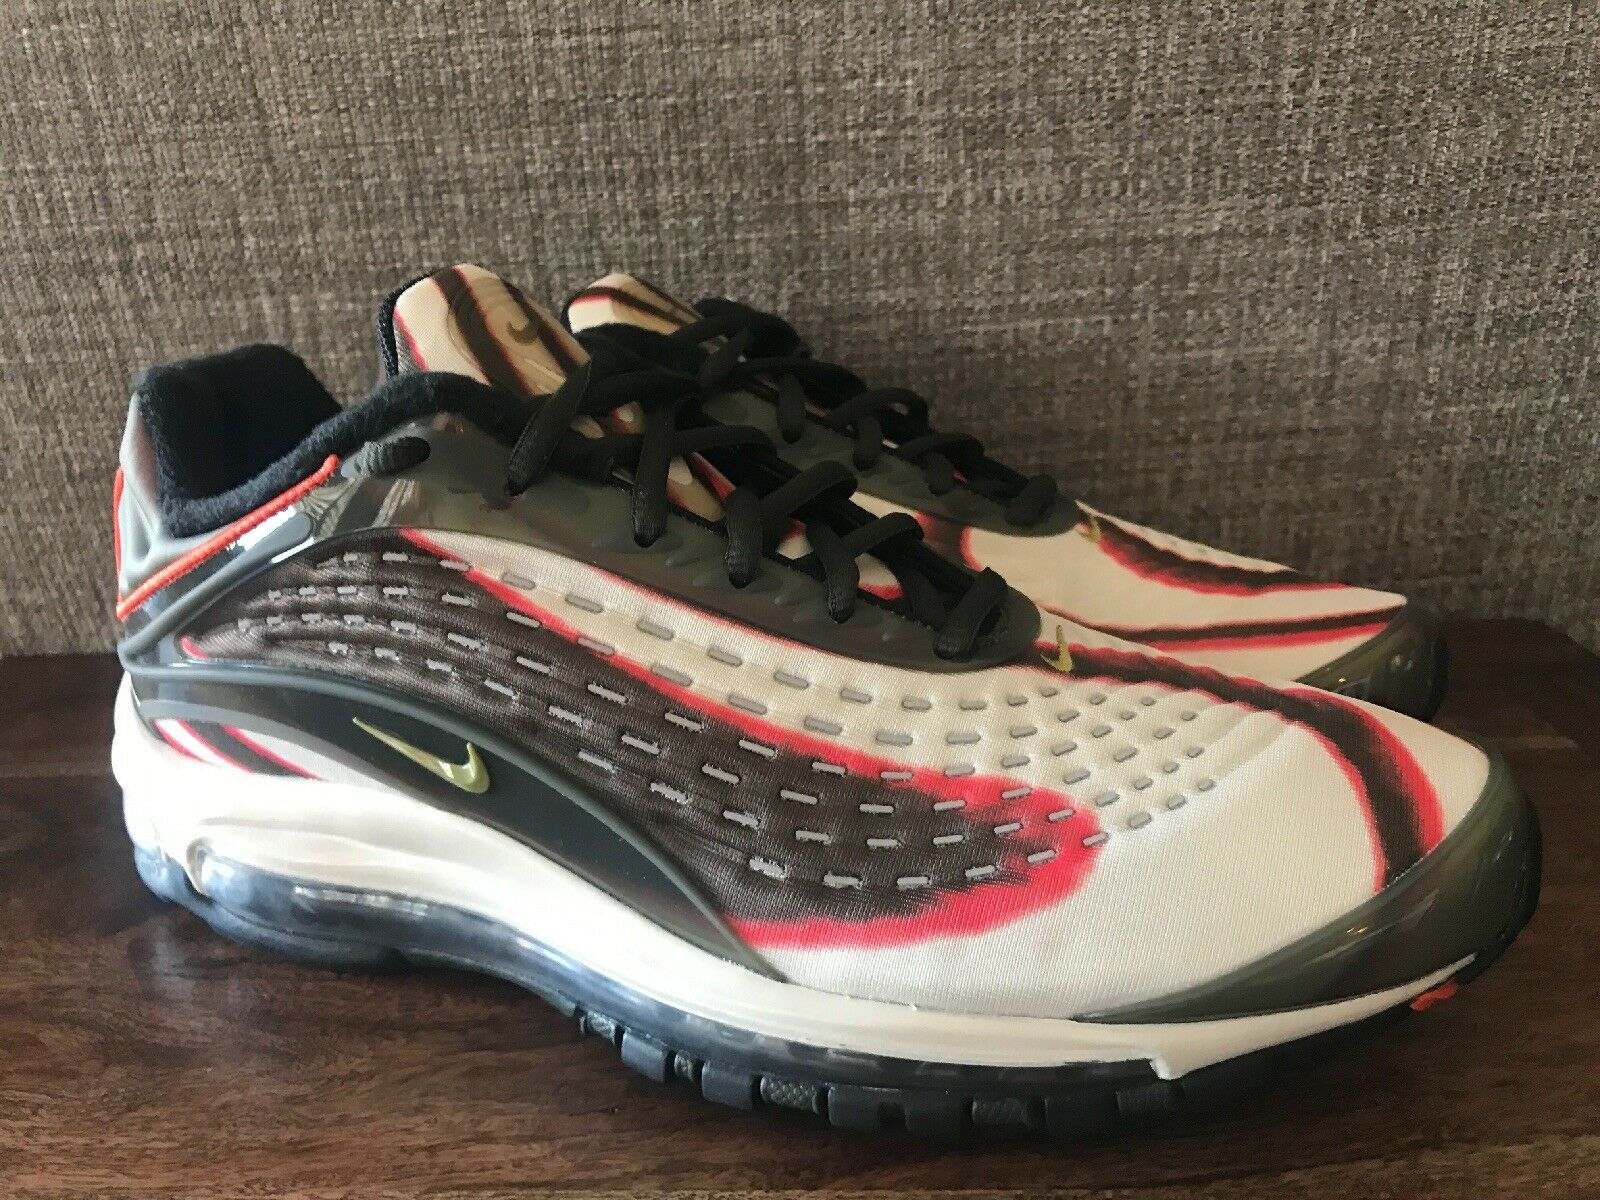 Nike Men's Air Max Deluxe 2018 Sequoia Running shoes Olive Size 9.5 AJ7831-300